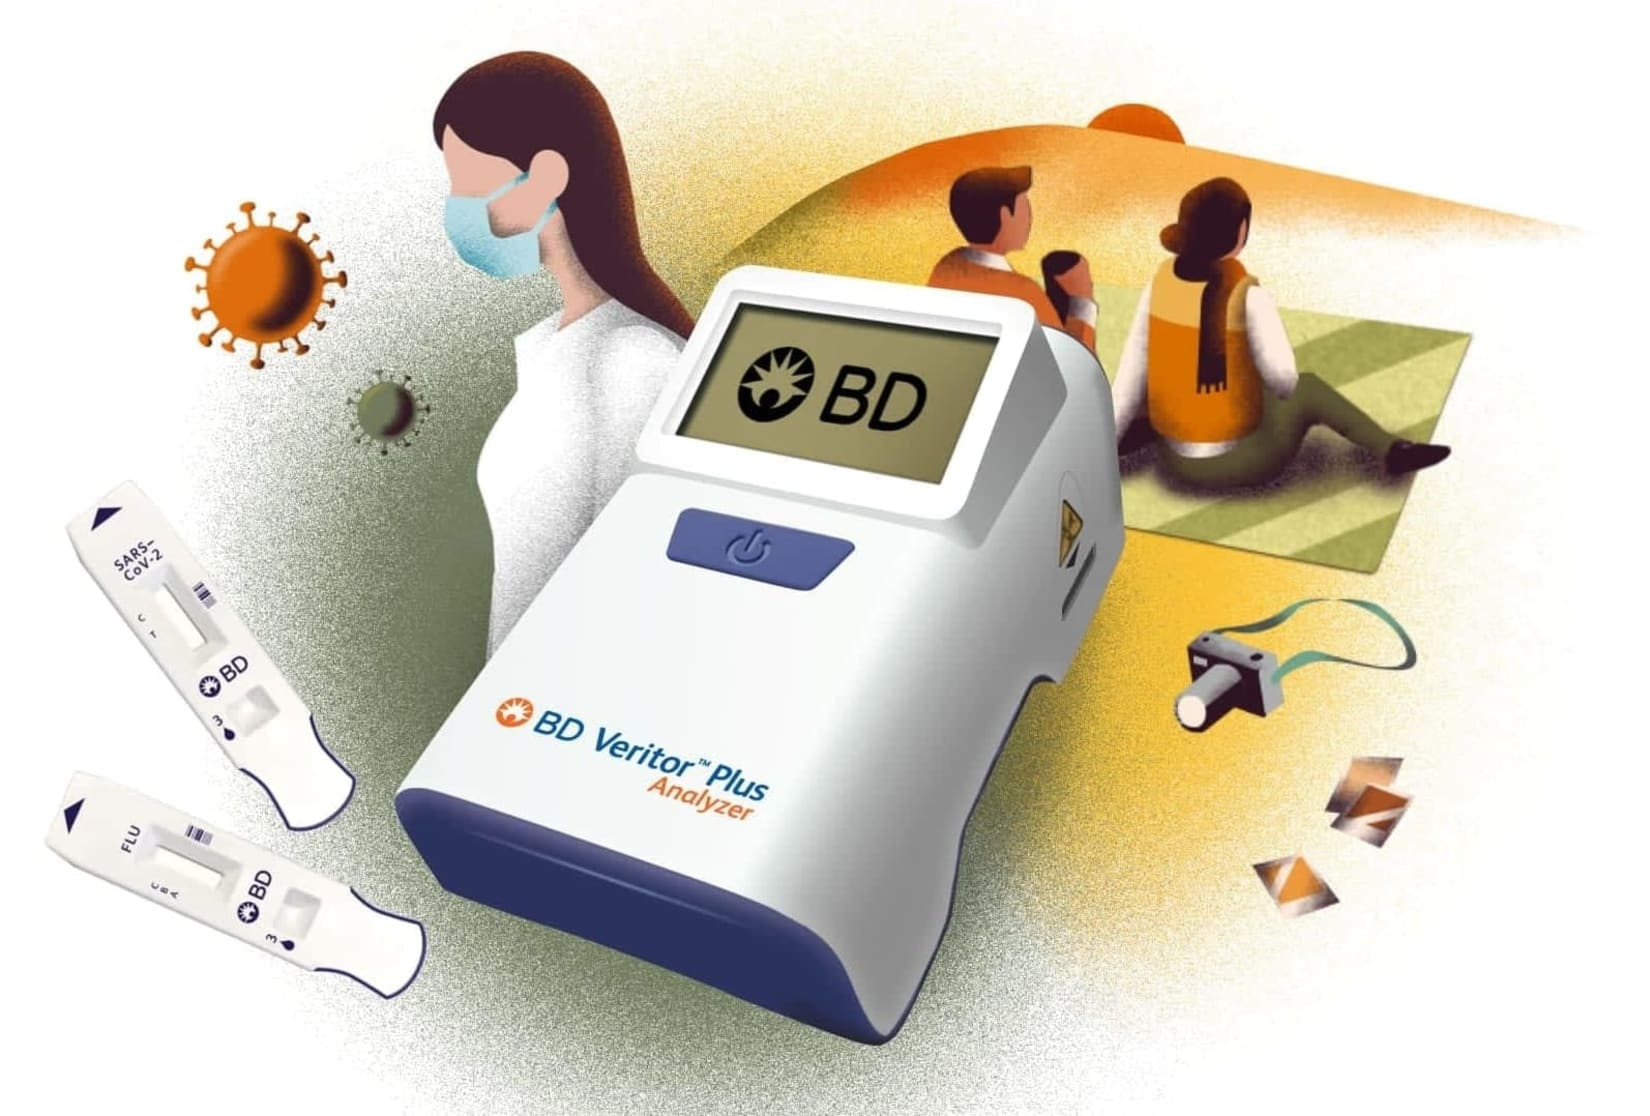 BD Veritor Plus Analyzer, Assays, Family, Medical Professional illustration